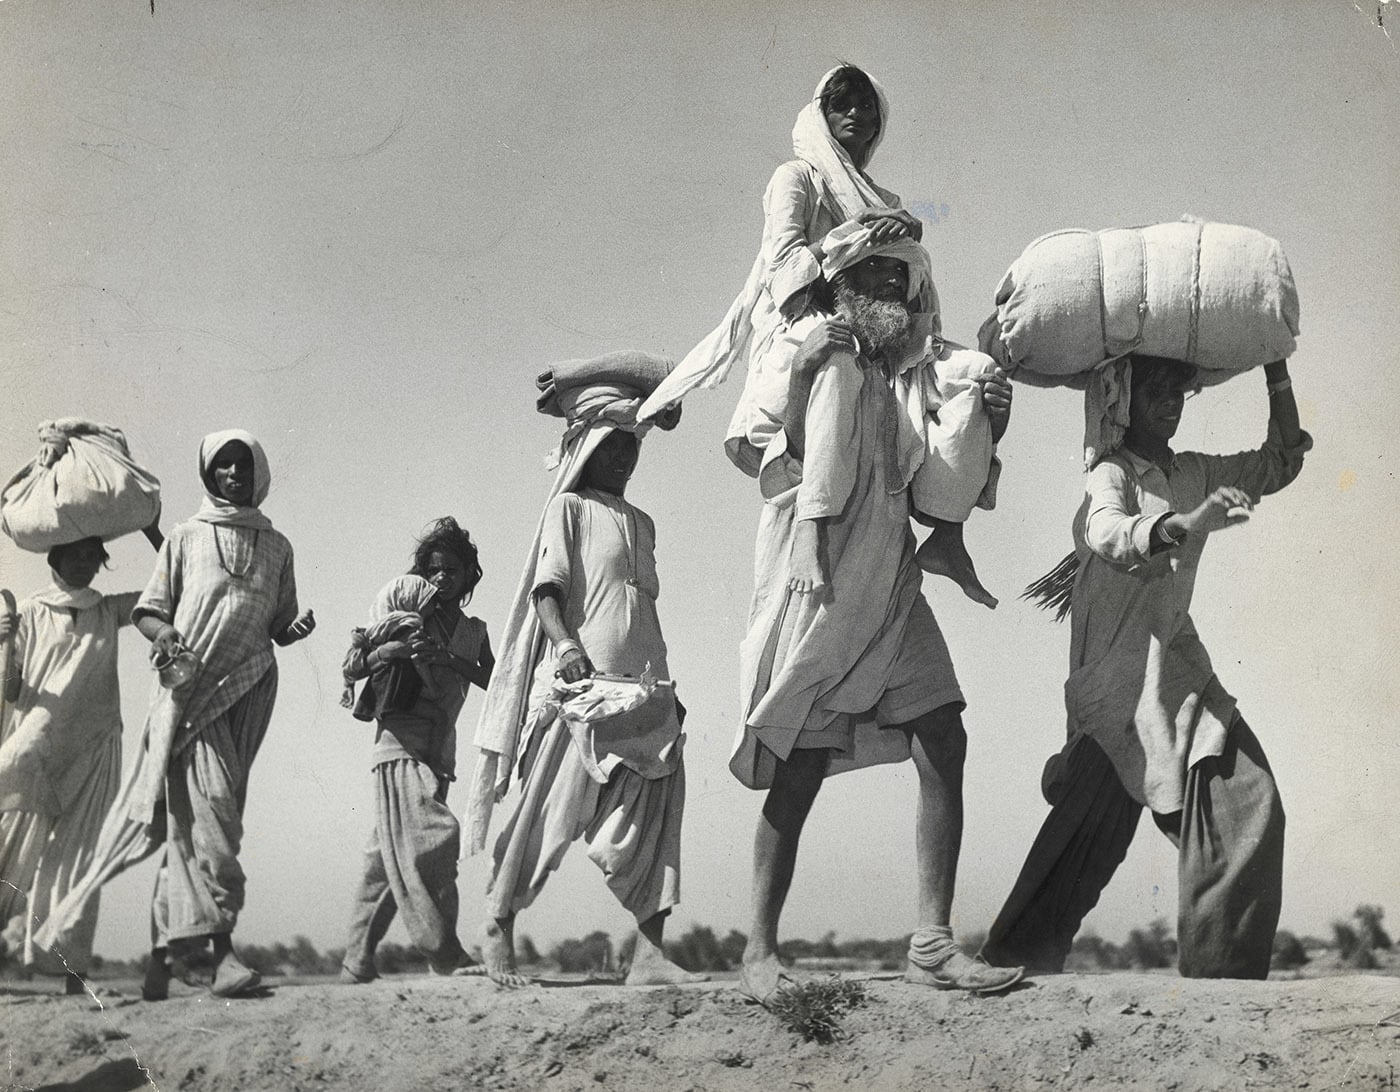 Too weak to walk on her own, a woman sits on her husband's shoulders as Sikhs and Hindus brave the unforgiving October heat during their migration to eastern Punjab from Lahore.— Excerpted with permission from Witness to Life and Freedom, Roli Books, Delhi